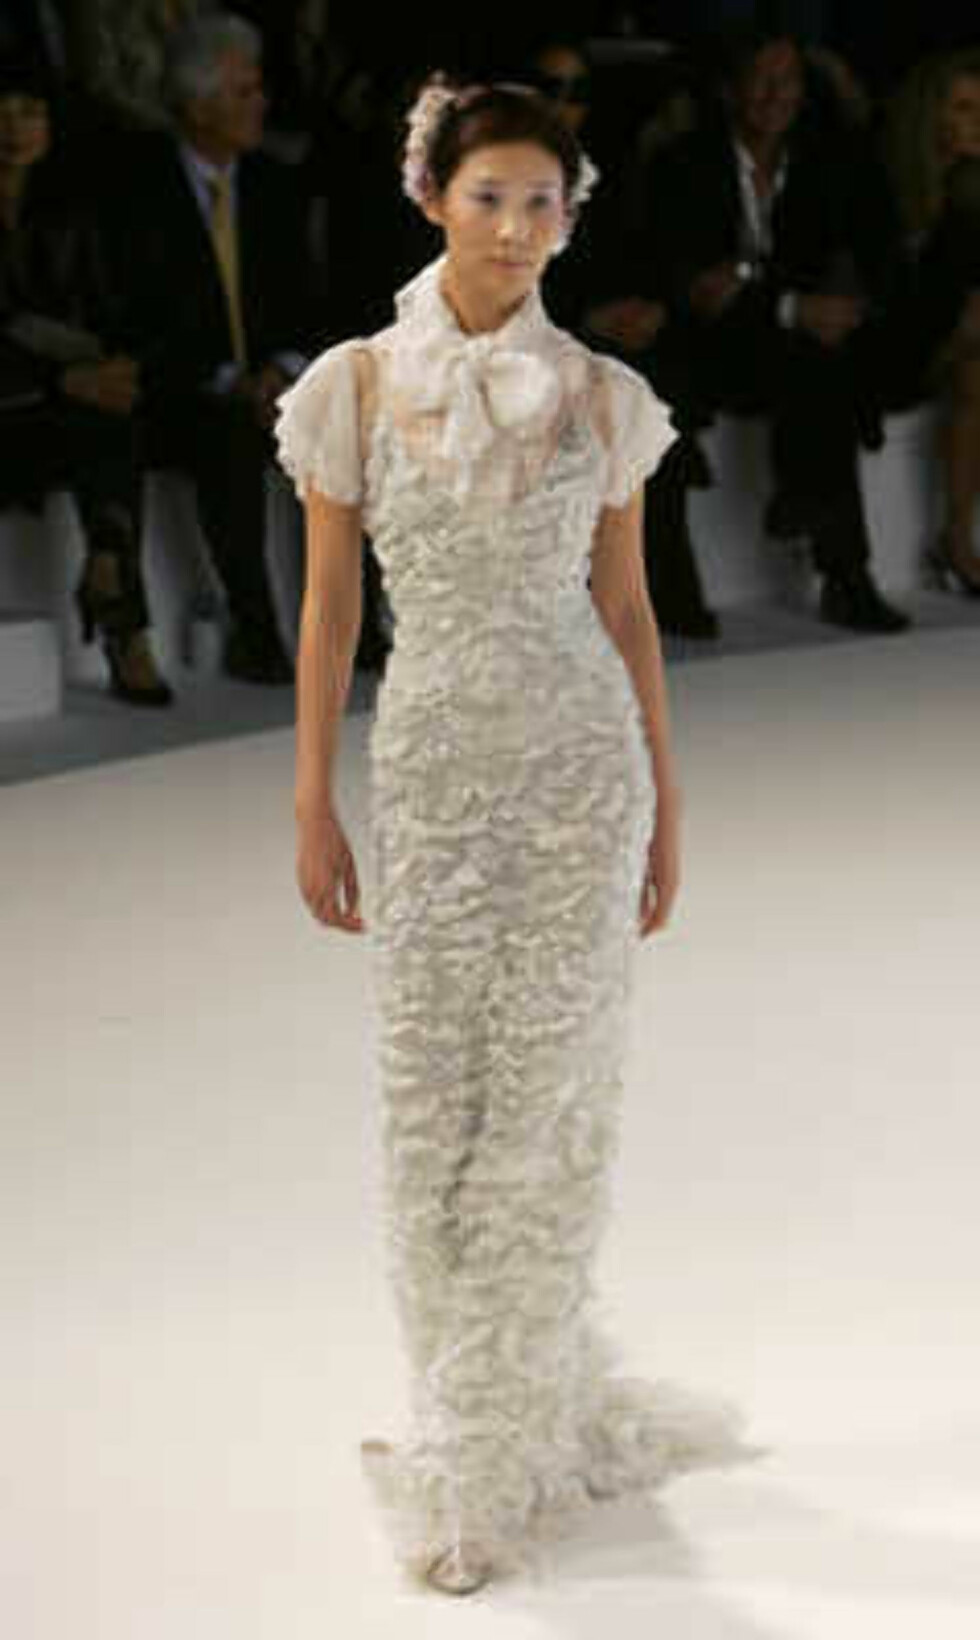 A model presents a creation by German designer Karl Lagerfeld during the Chanel 2006 Spring-Summer Haute Couture fashion show in Hong Kong Friday, March 24, 2006.  (AP Photo/Kin Cheung) Foto: AP